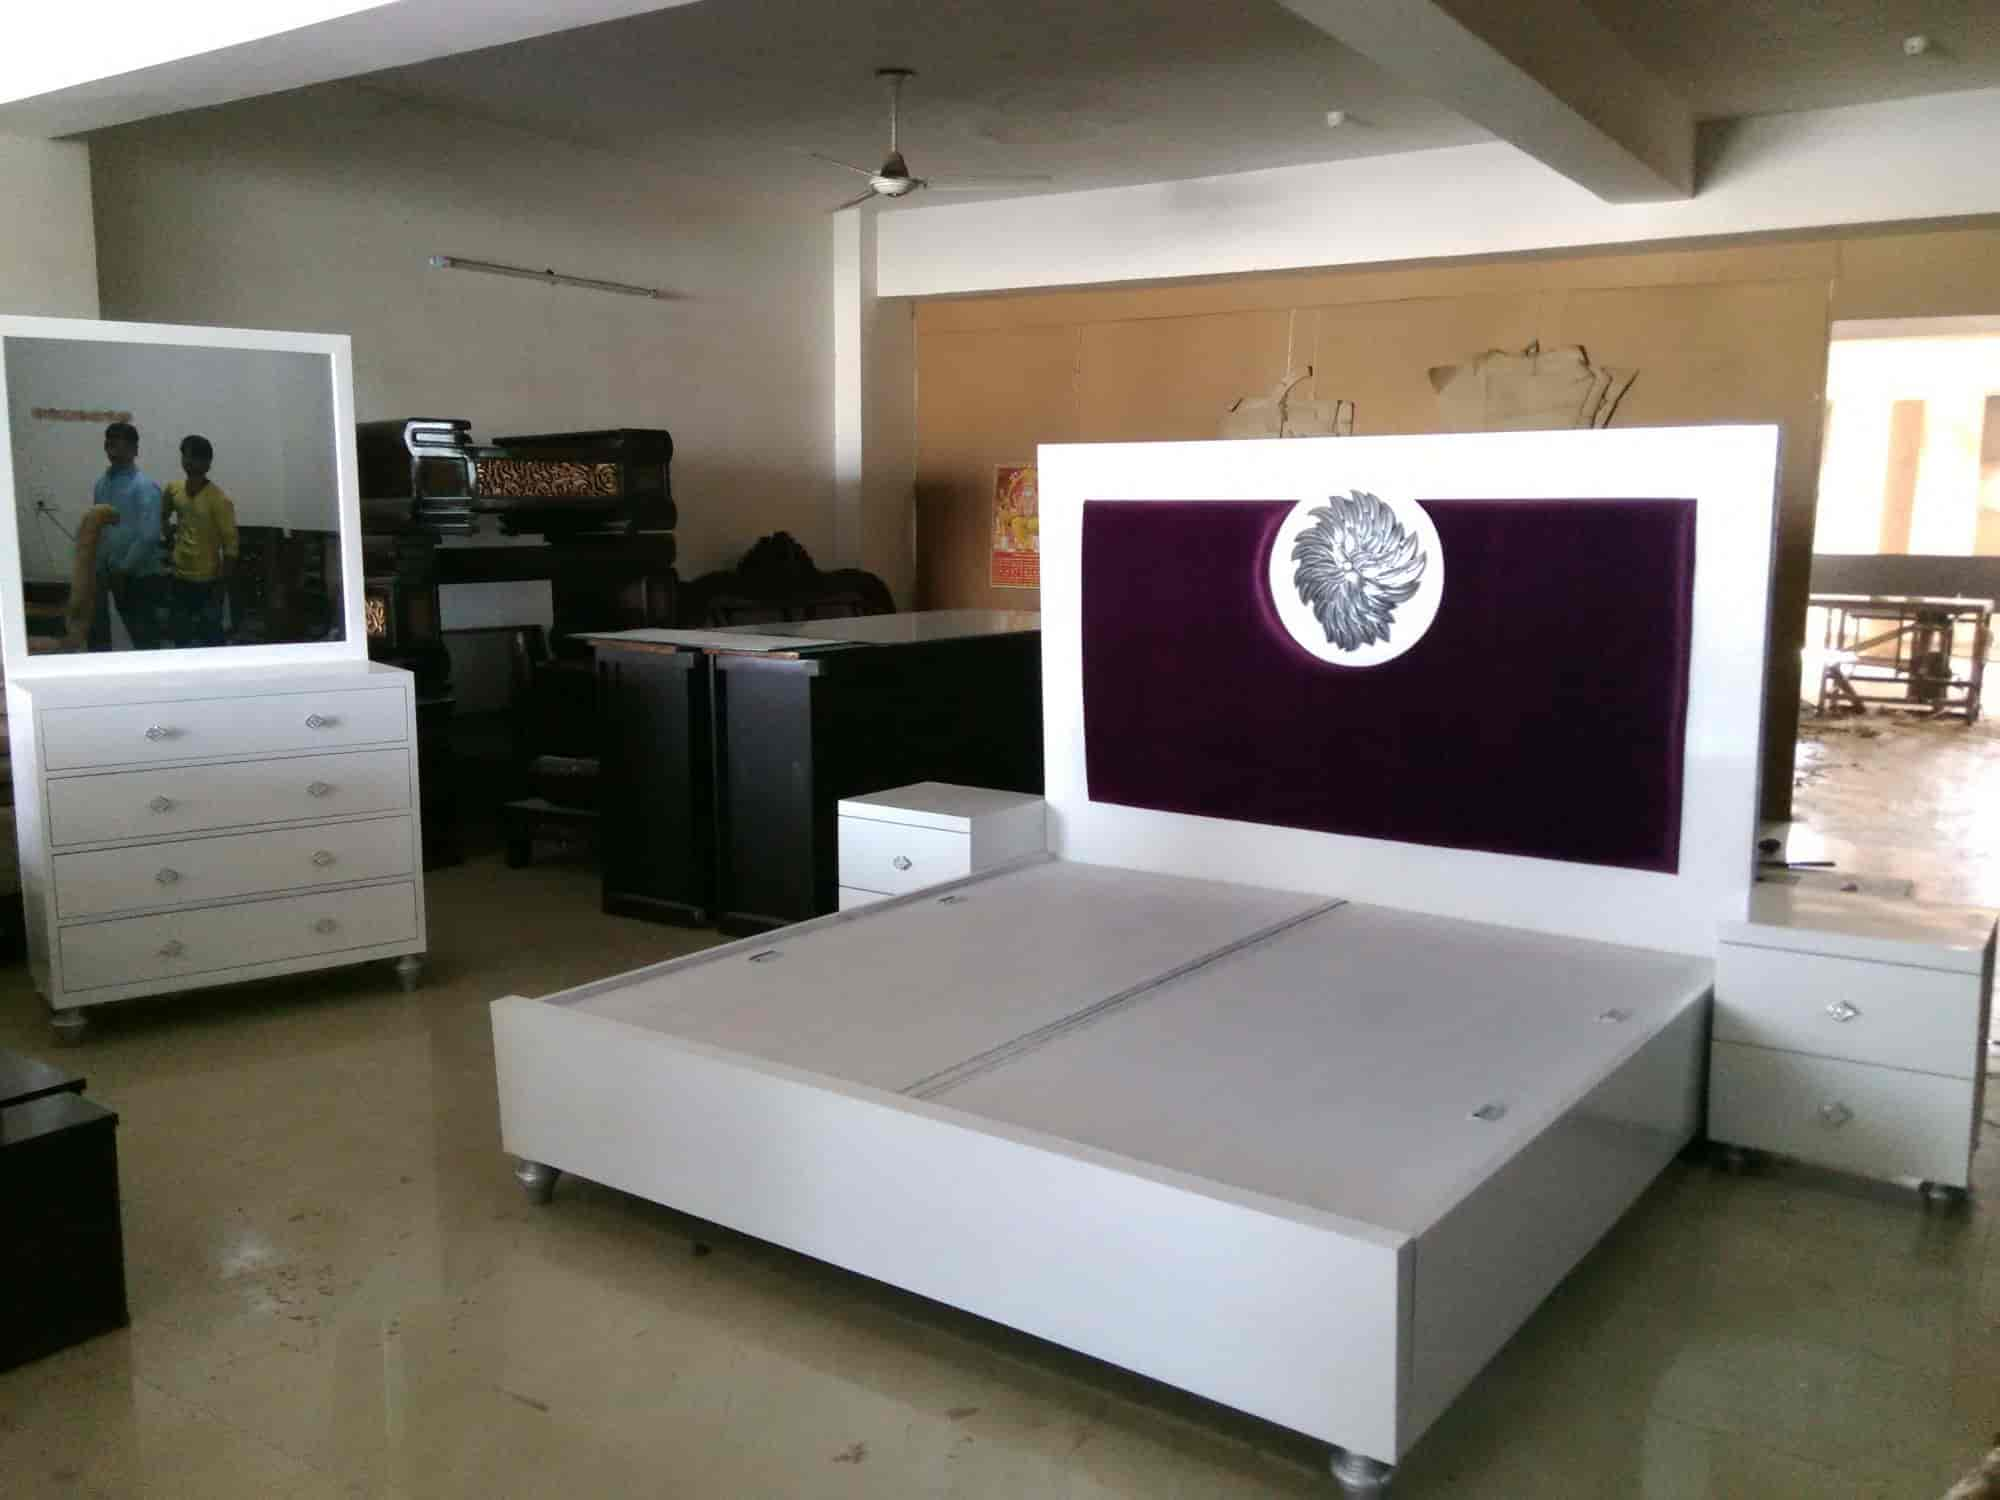 Amazing H K Furniture Kirti Nagar Home Furniture Manufacturers In Home Interior And Landscaping Oversignezvosmurscom